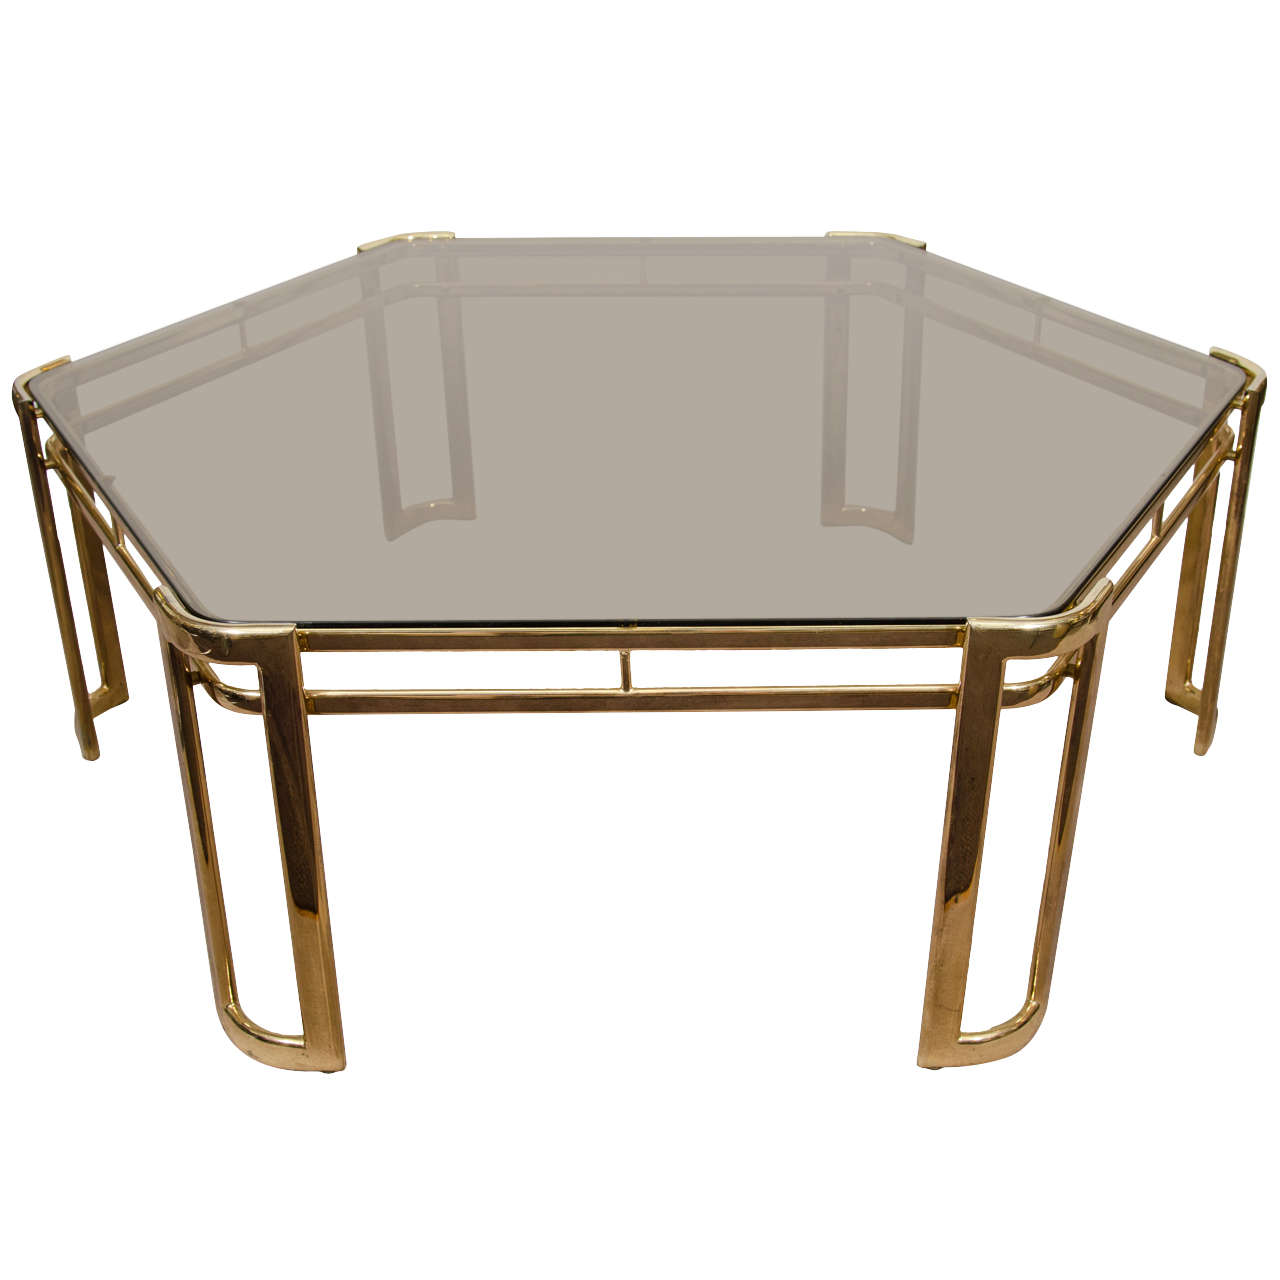 Midcentury Brass Plated Hexagonal Coffee Or Cocktail Table At 1stdibs